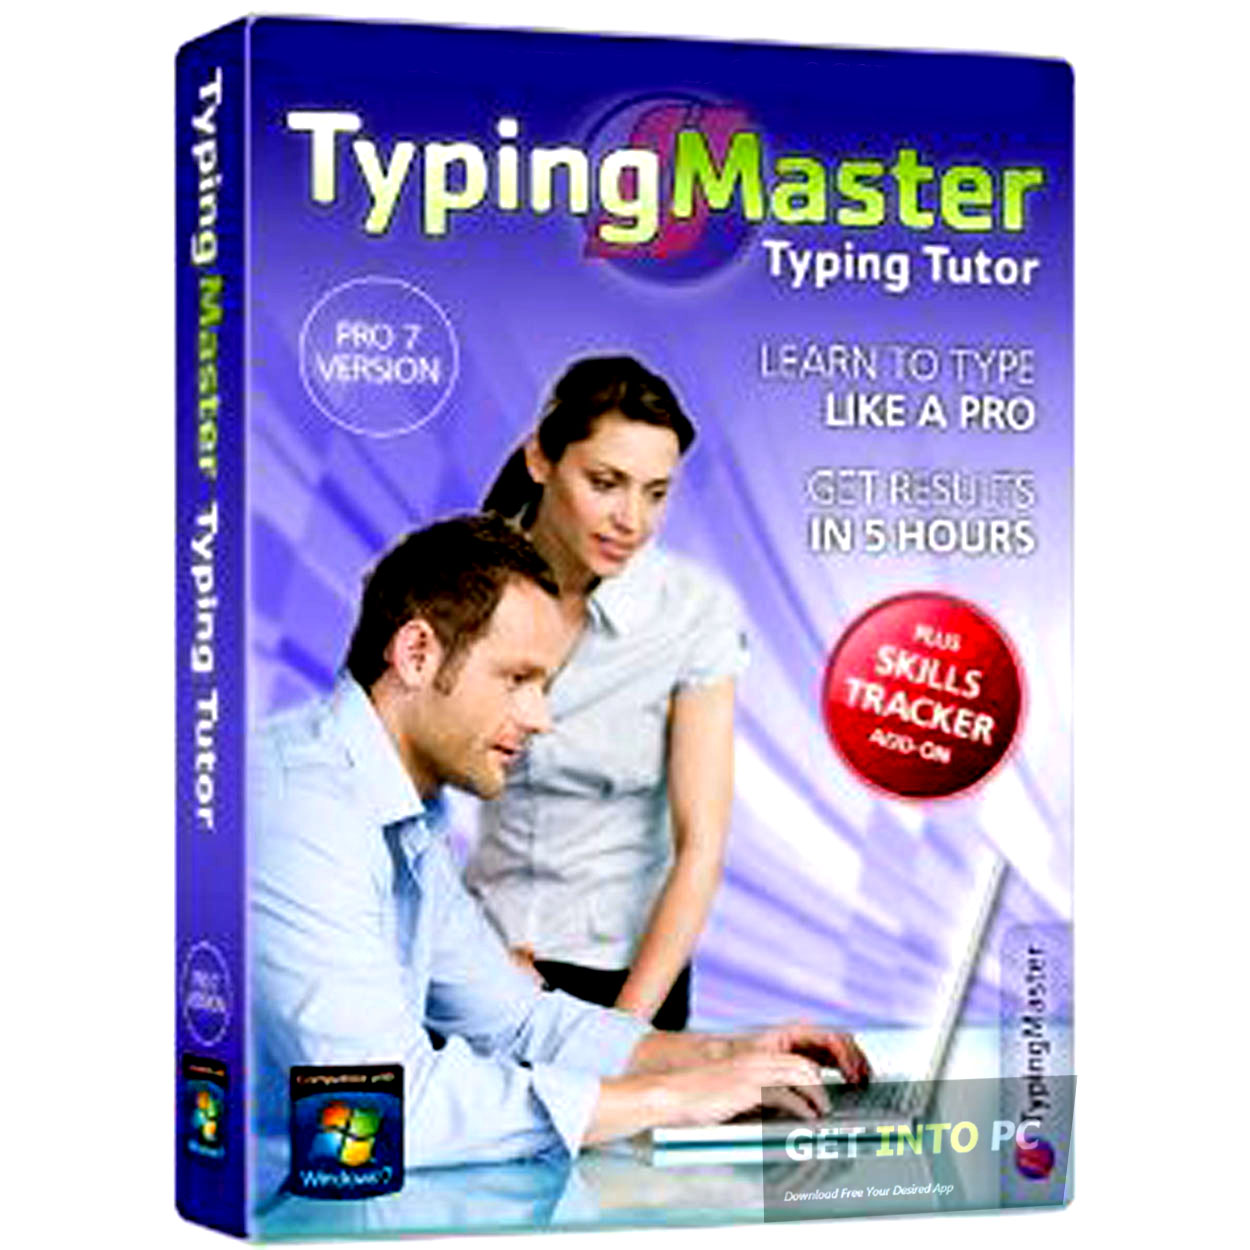 Free Typing Master Download | Get into PC